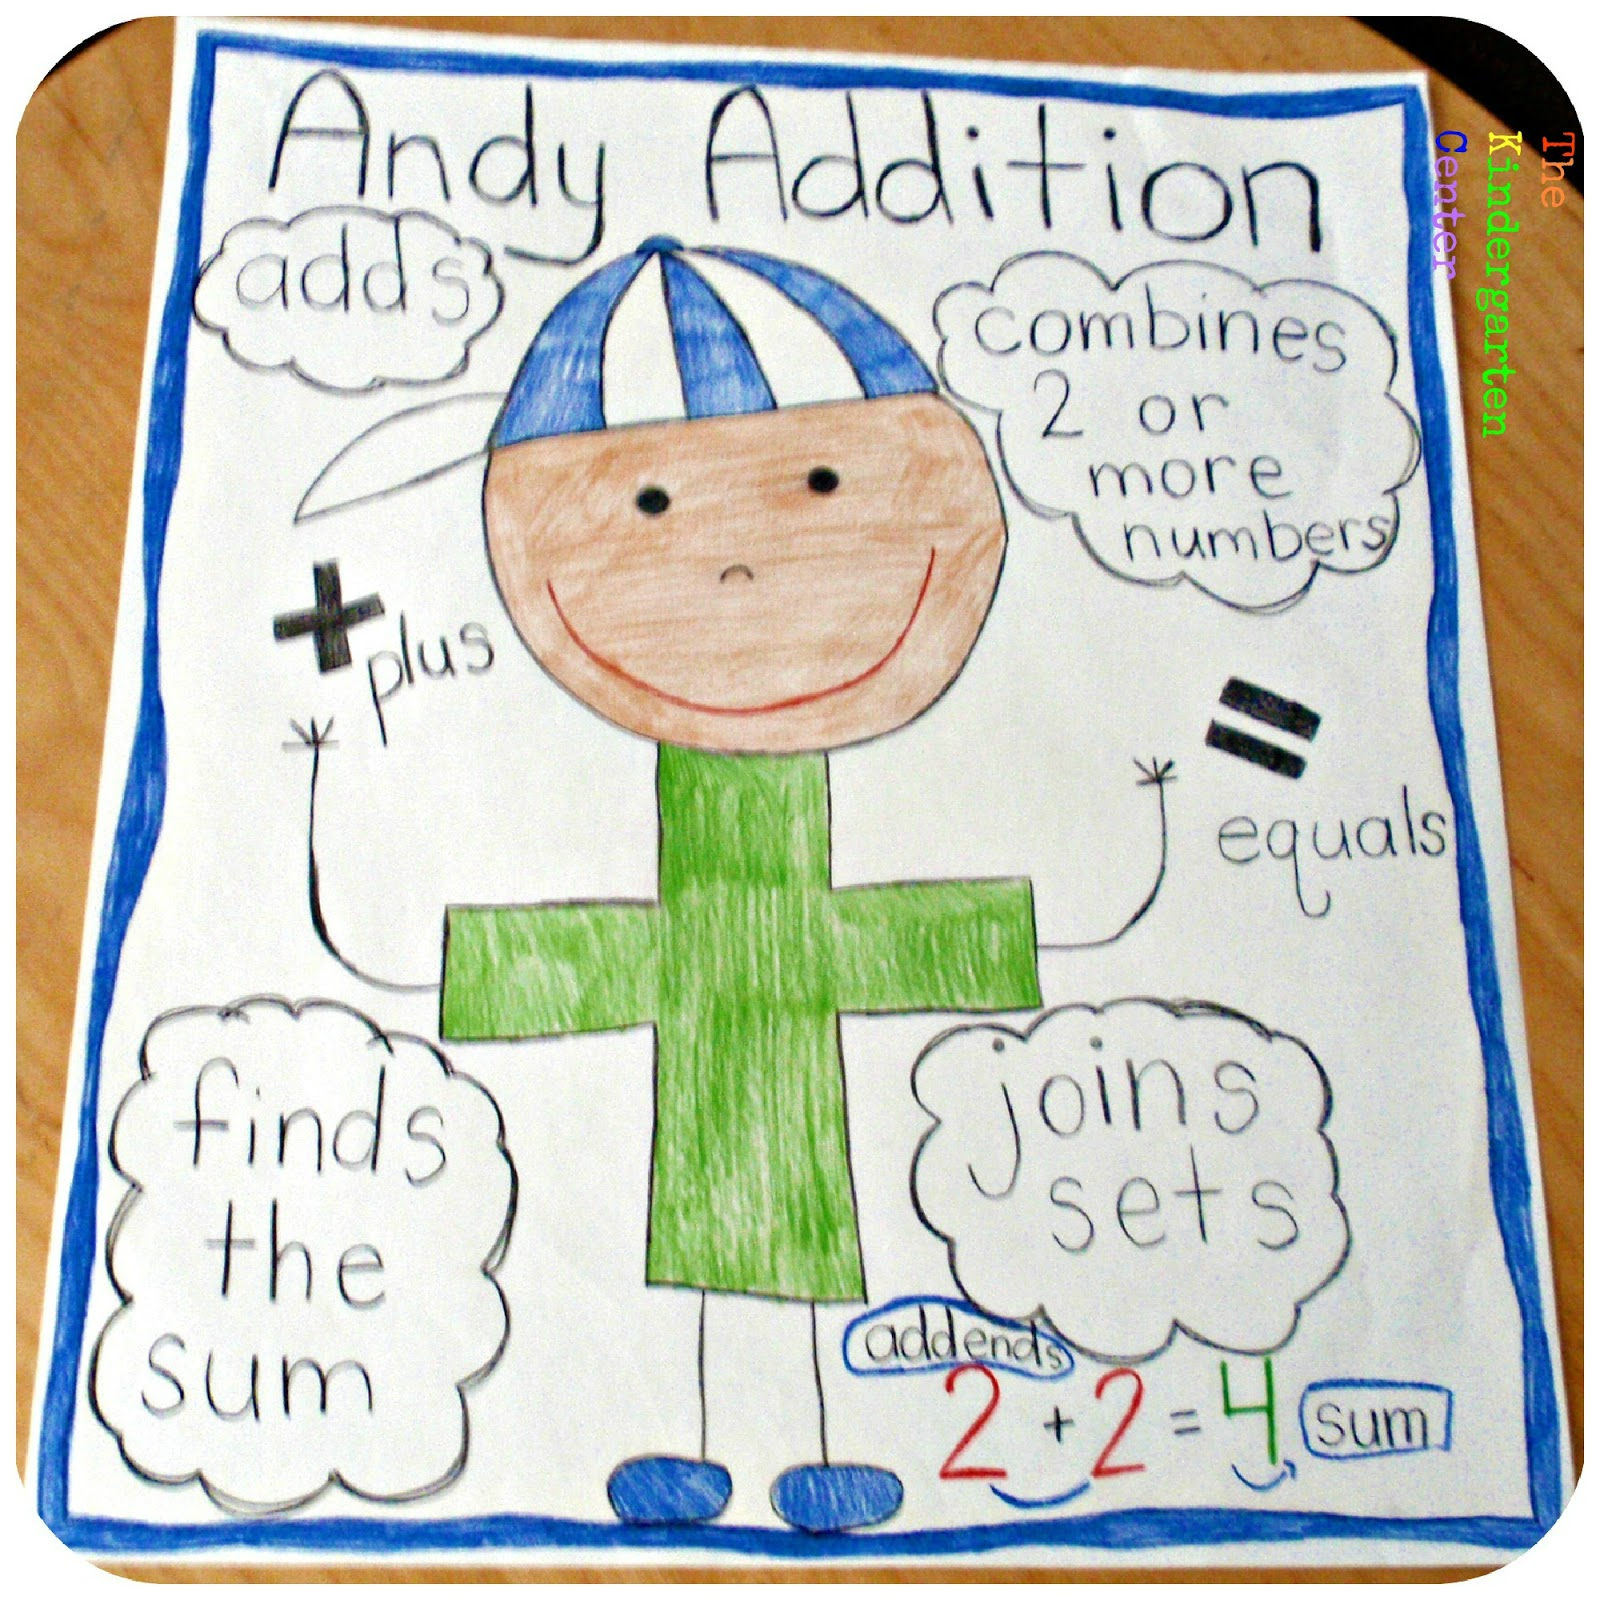 Kinderkids Andy Addition